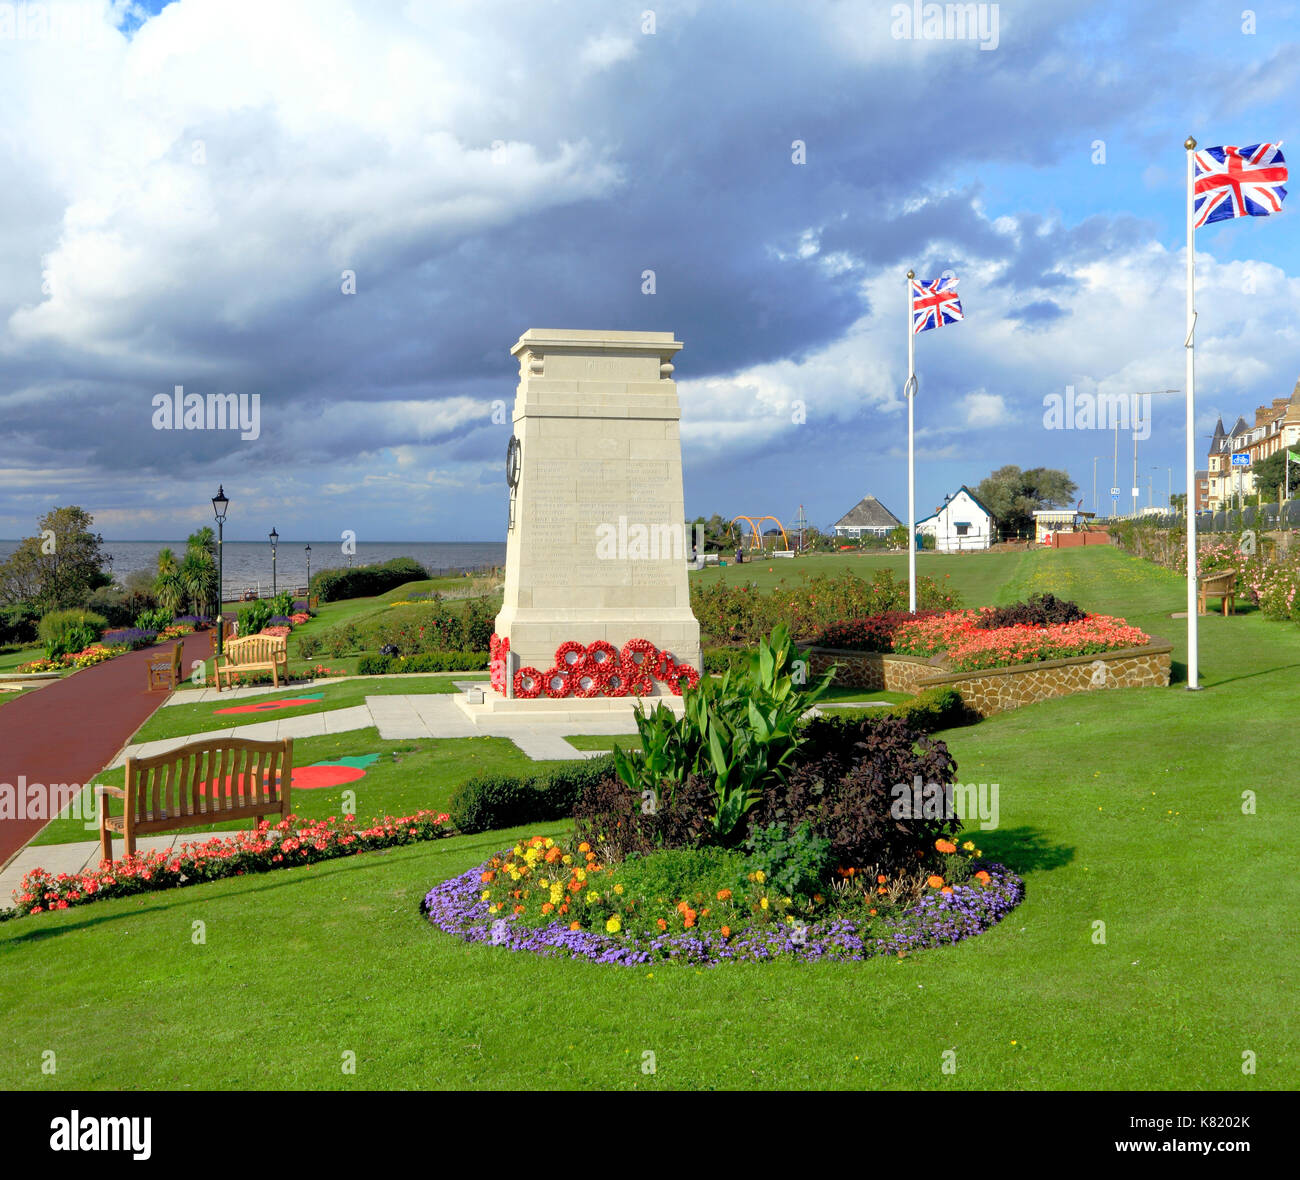 War Memorial, memorials, wreaths, poppies, Union Jack Flag, Flags, Remembrance, Esplanade Gardens, Union Jack Flags, Hunstanton, Norfolk, England, UK - Stock Image